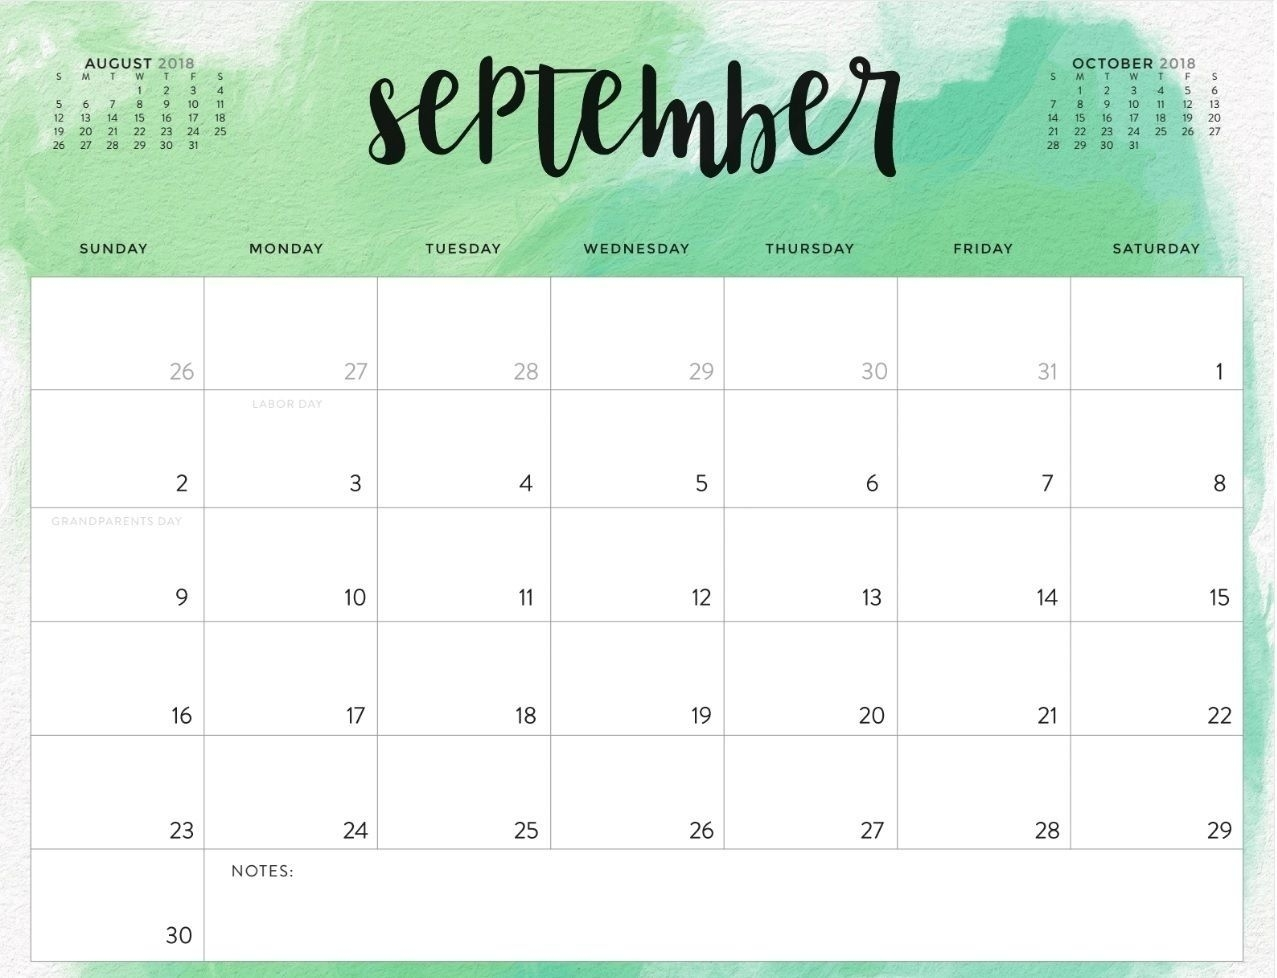 Free Printable Calendar Waterproof In 2020 | September